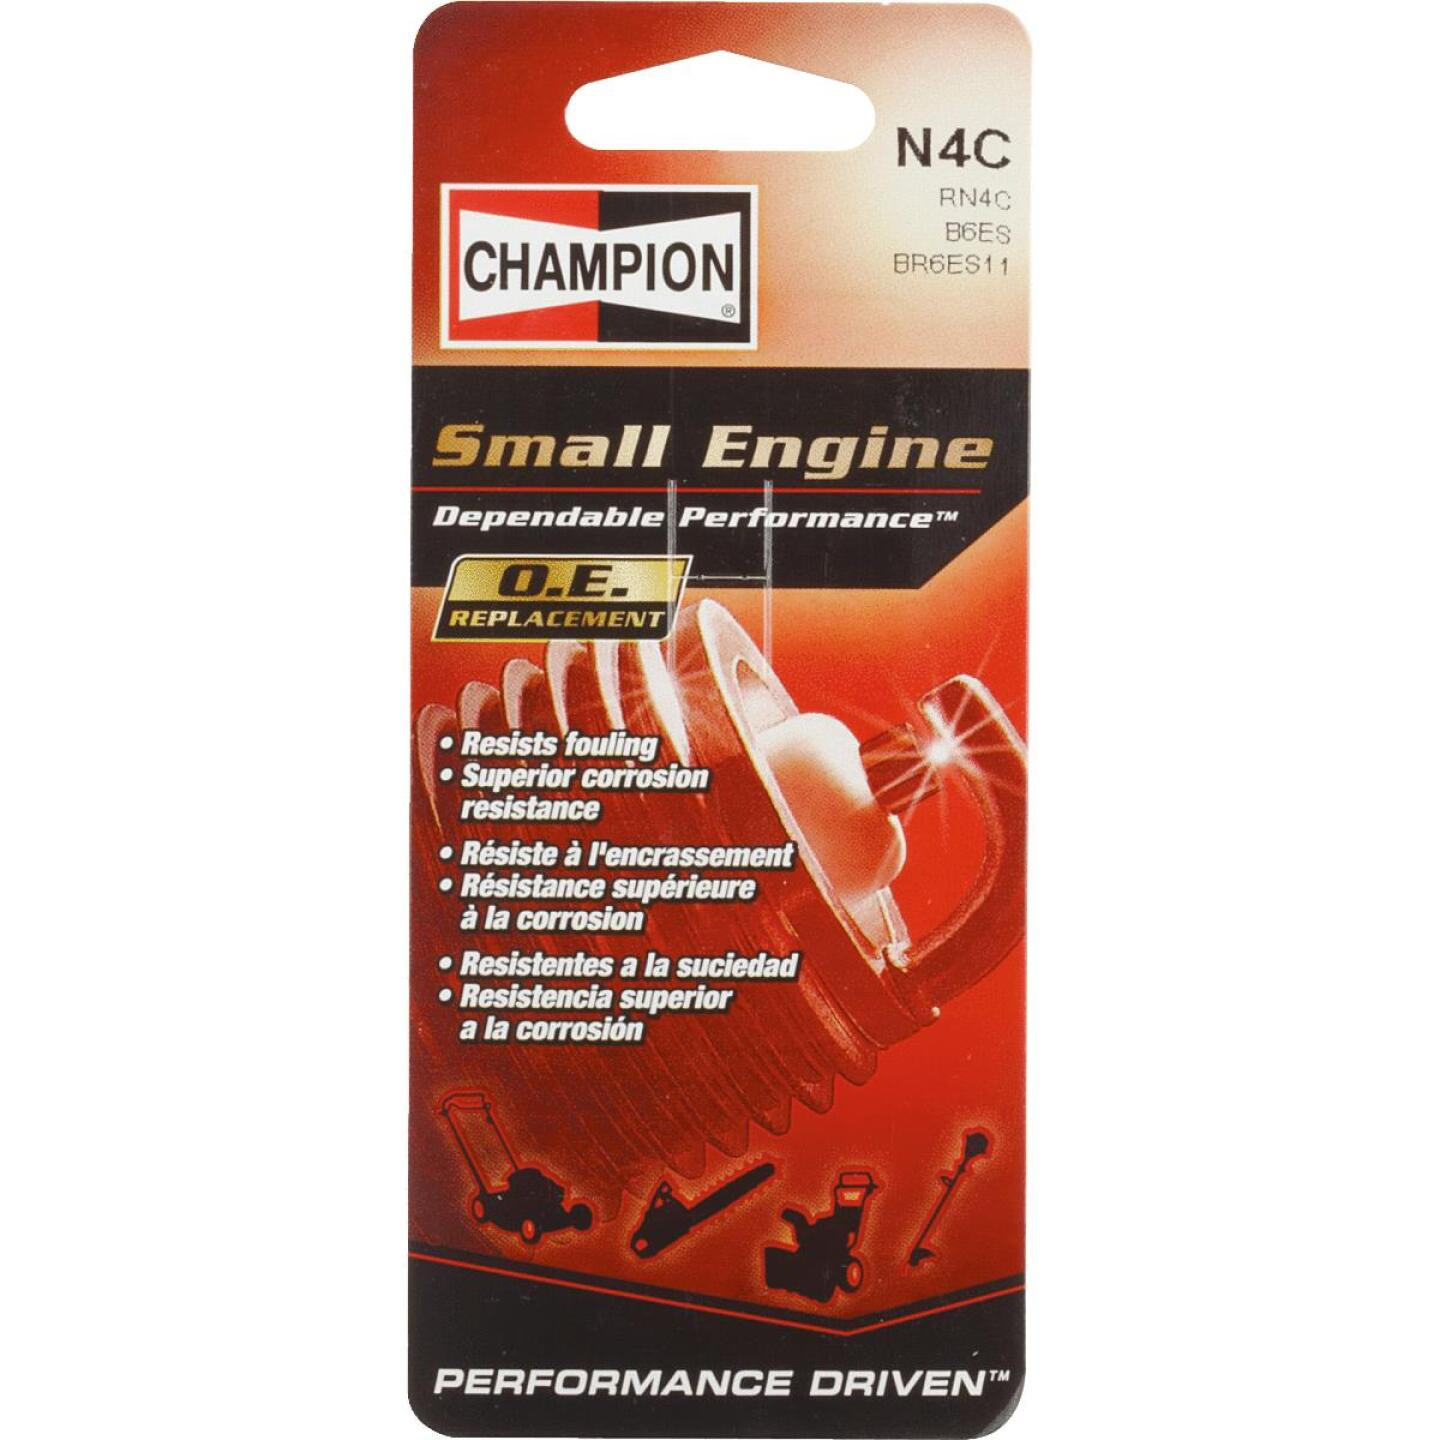 Champion N4C Copper Plus Small Engine Spark Plug Image 1